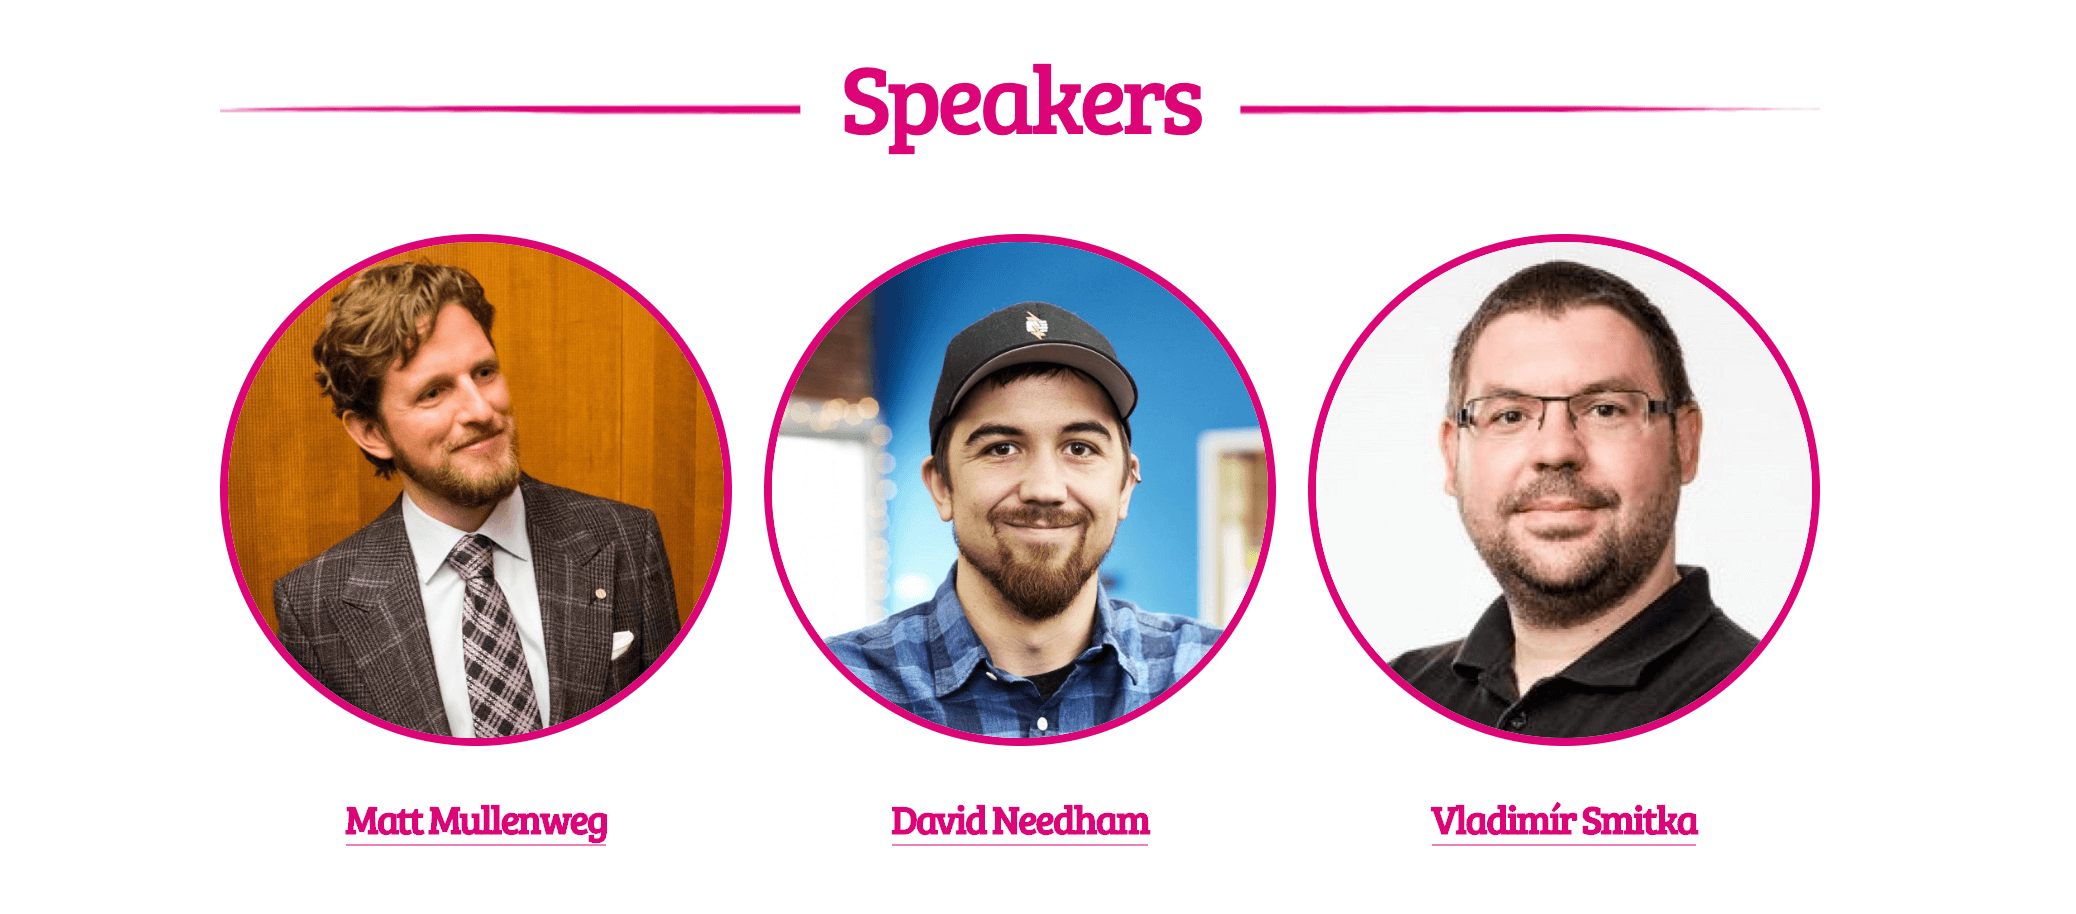 The Speakers page for WordCamp Europe 2019.